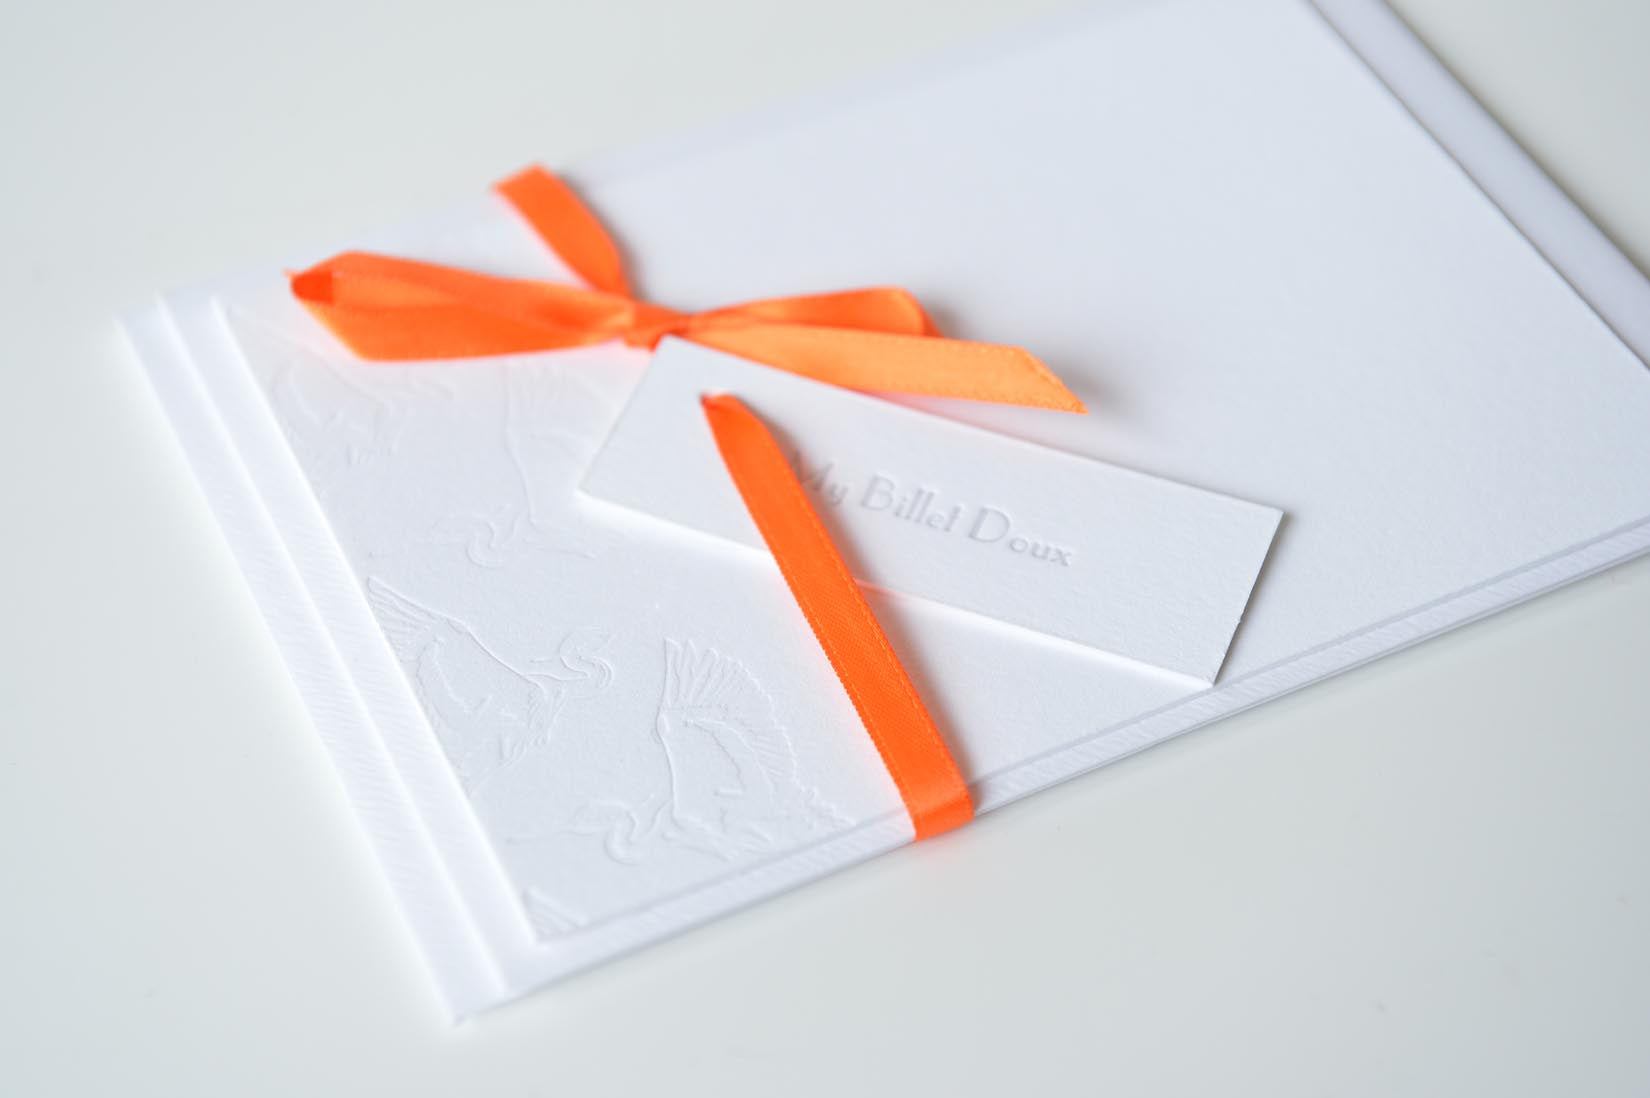 Luxurious cards - MyBilletDoux.com